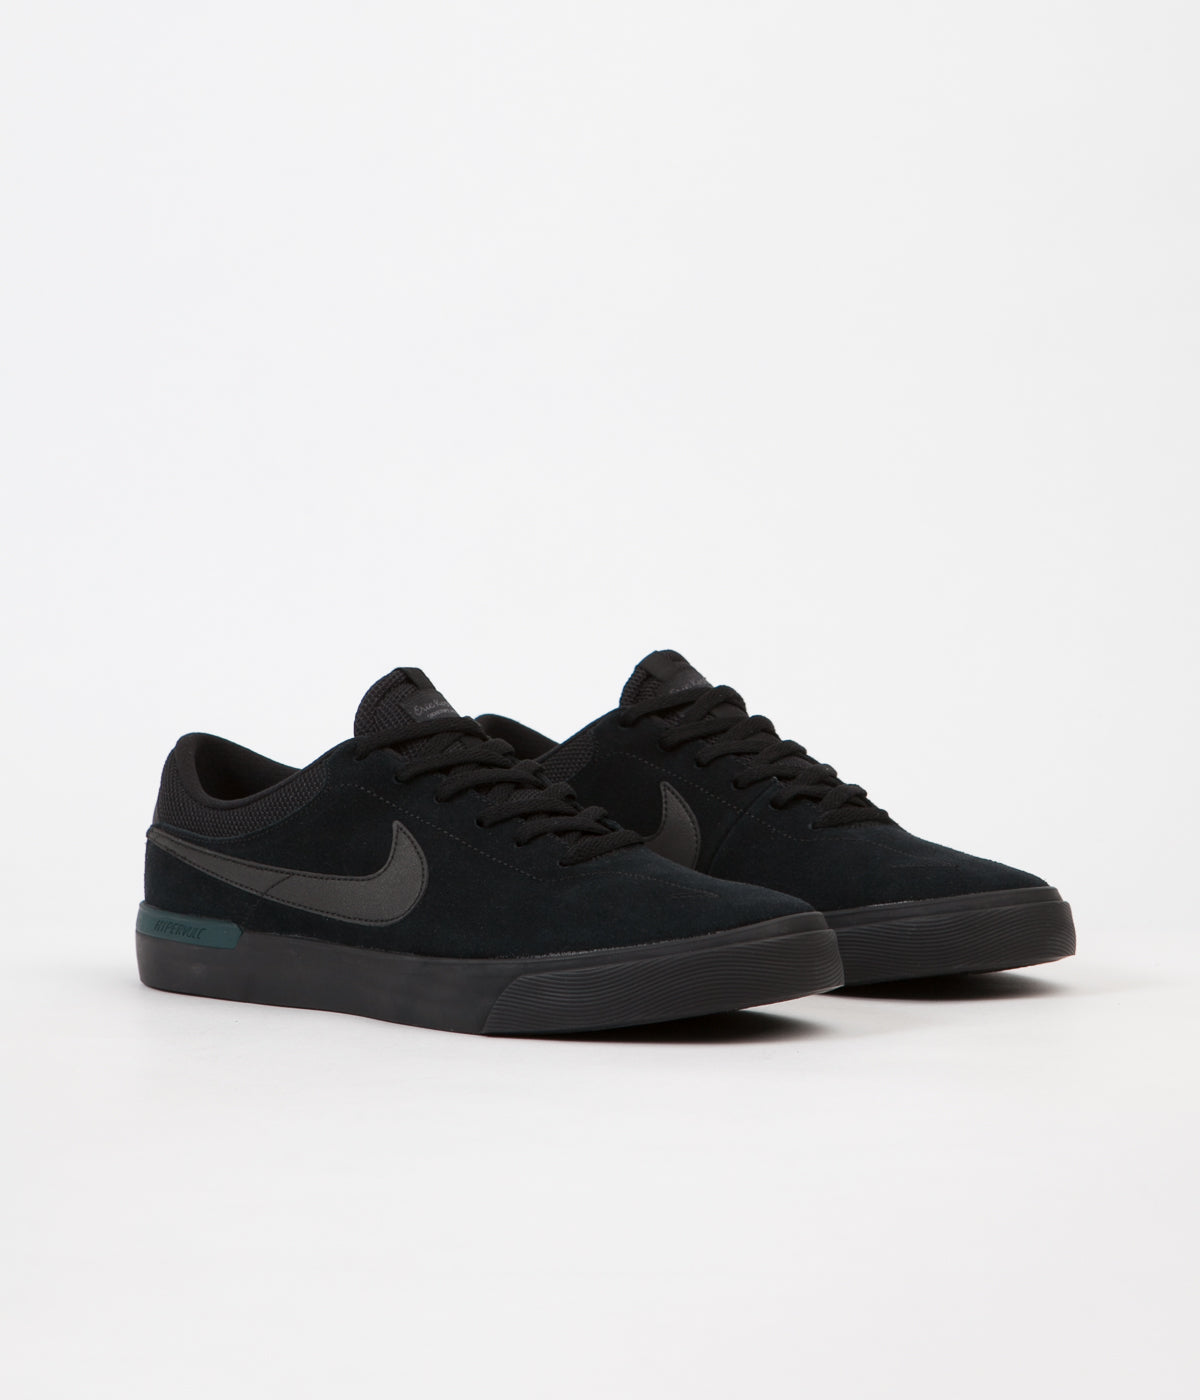 ... Nike SB Koston Hypervulc Shoes - Black   Metallic Black - Dark Atomic  Teal ... c8ff2d997